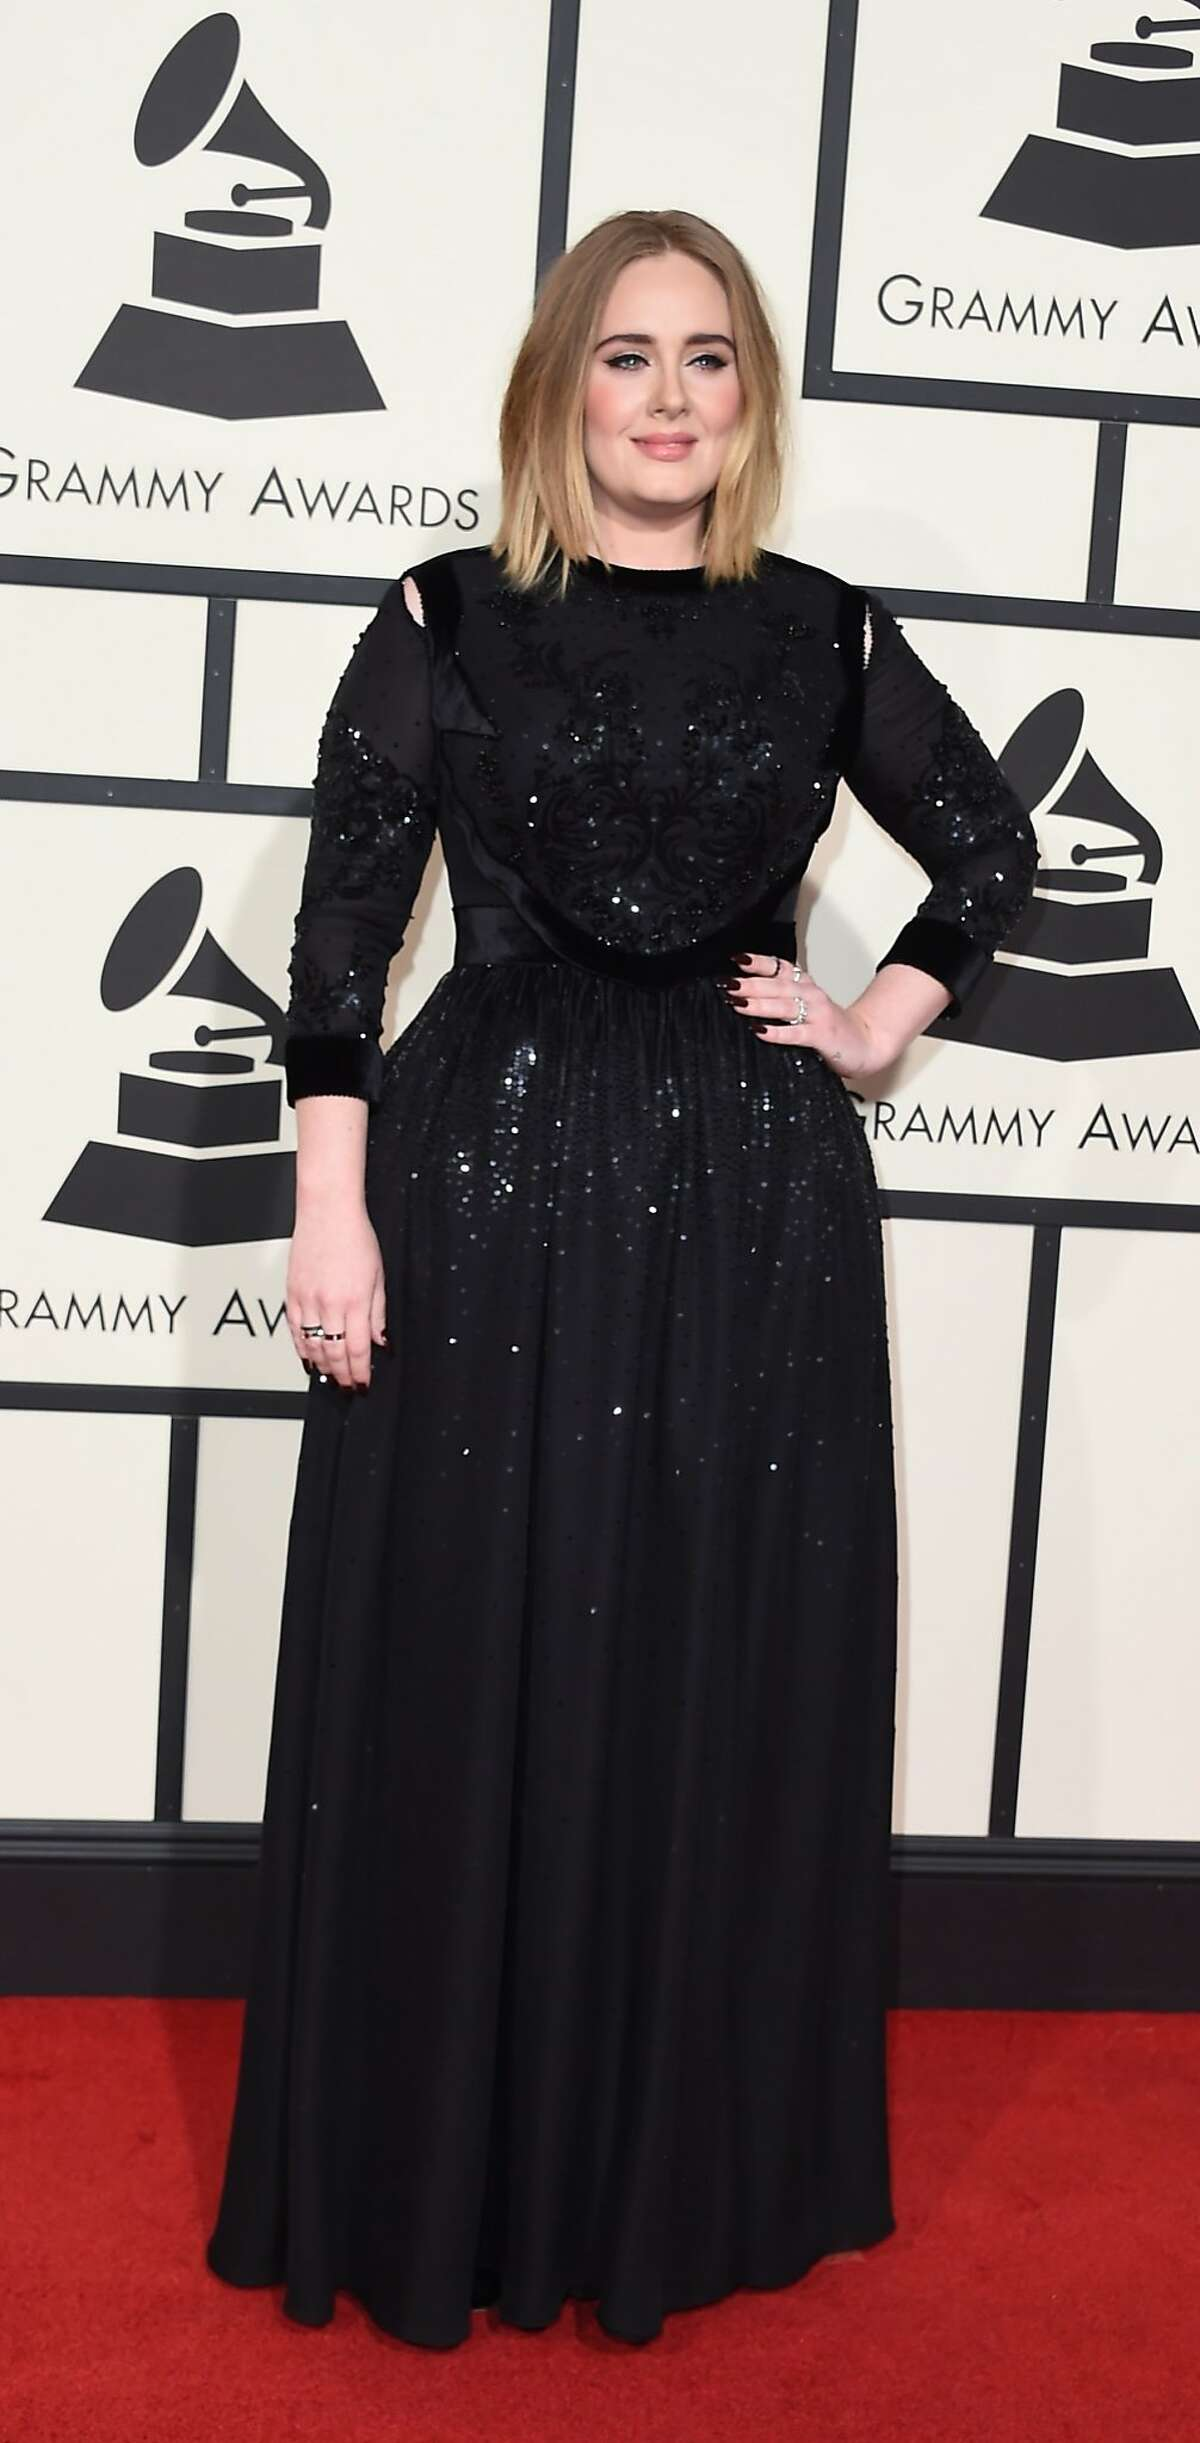 Singer Adele arrives on the red carpet during the 58th Annual Grammy Music Awards in Los Angeles February 15, 2016.